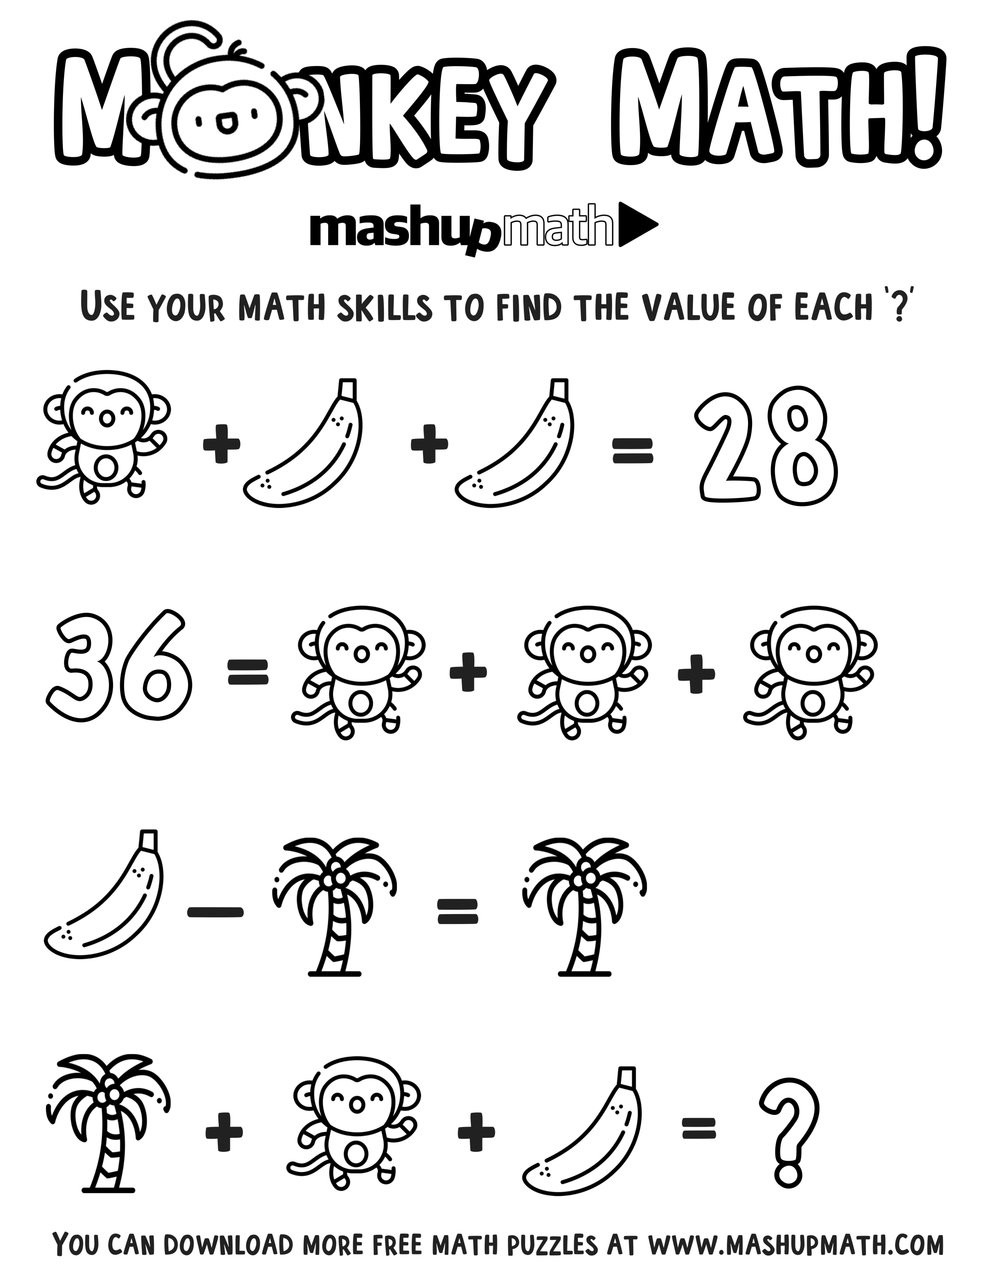 Math Coloring Worksheets 7th Grade Free Math Coloring Worksheets for Grades 1 8 — Mashup Math